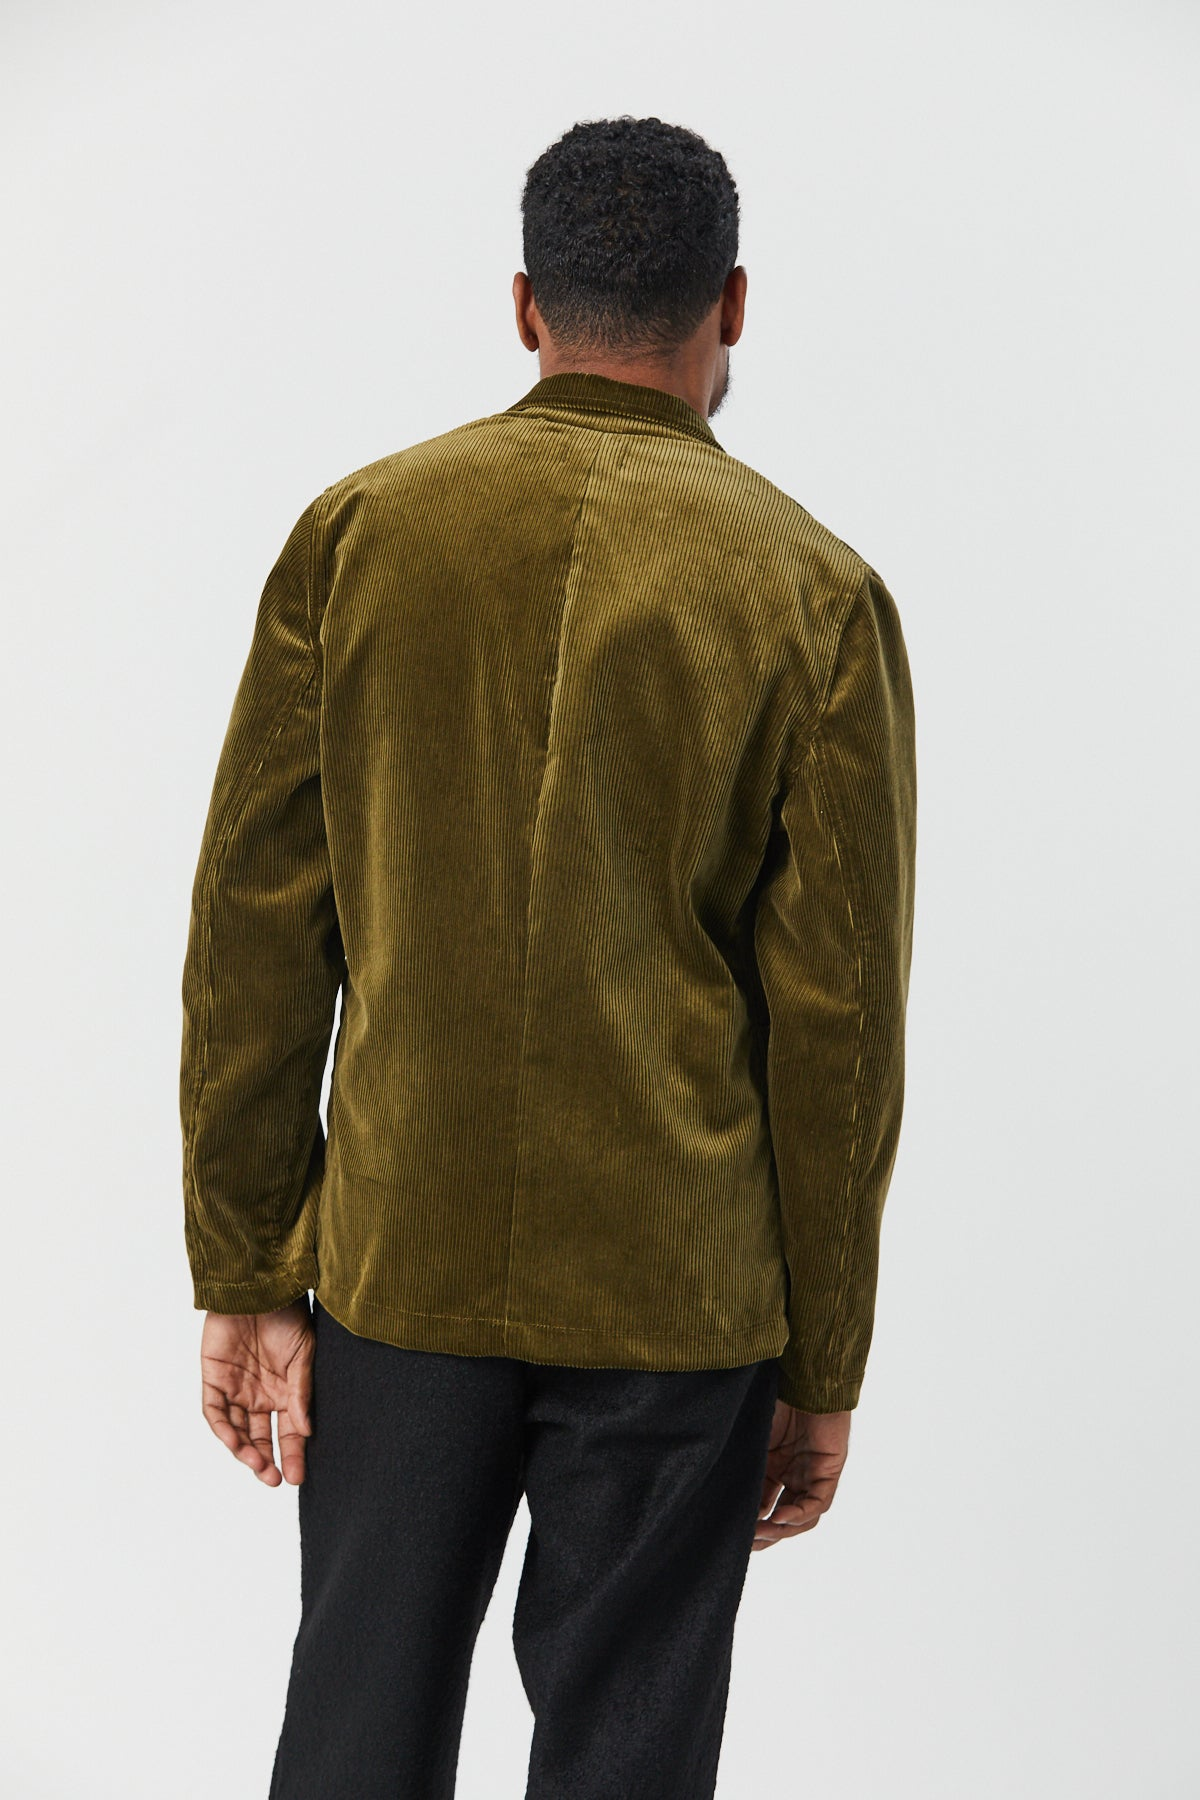 CASS JACKET IN MOUSE CORDUROY - Fortune Goods